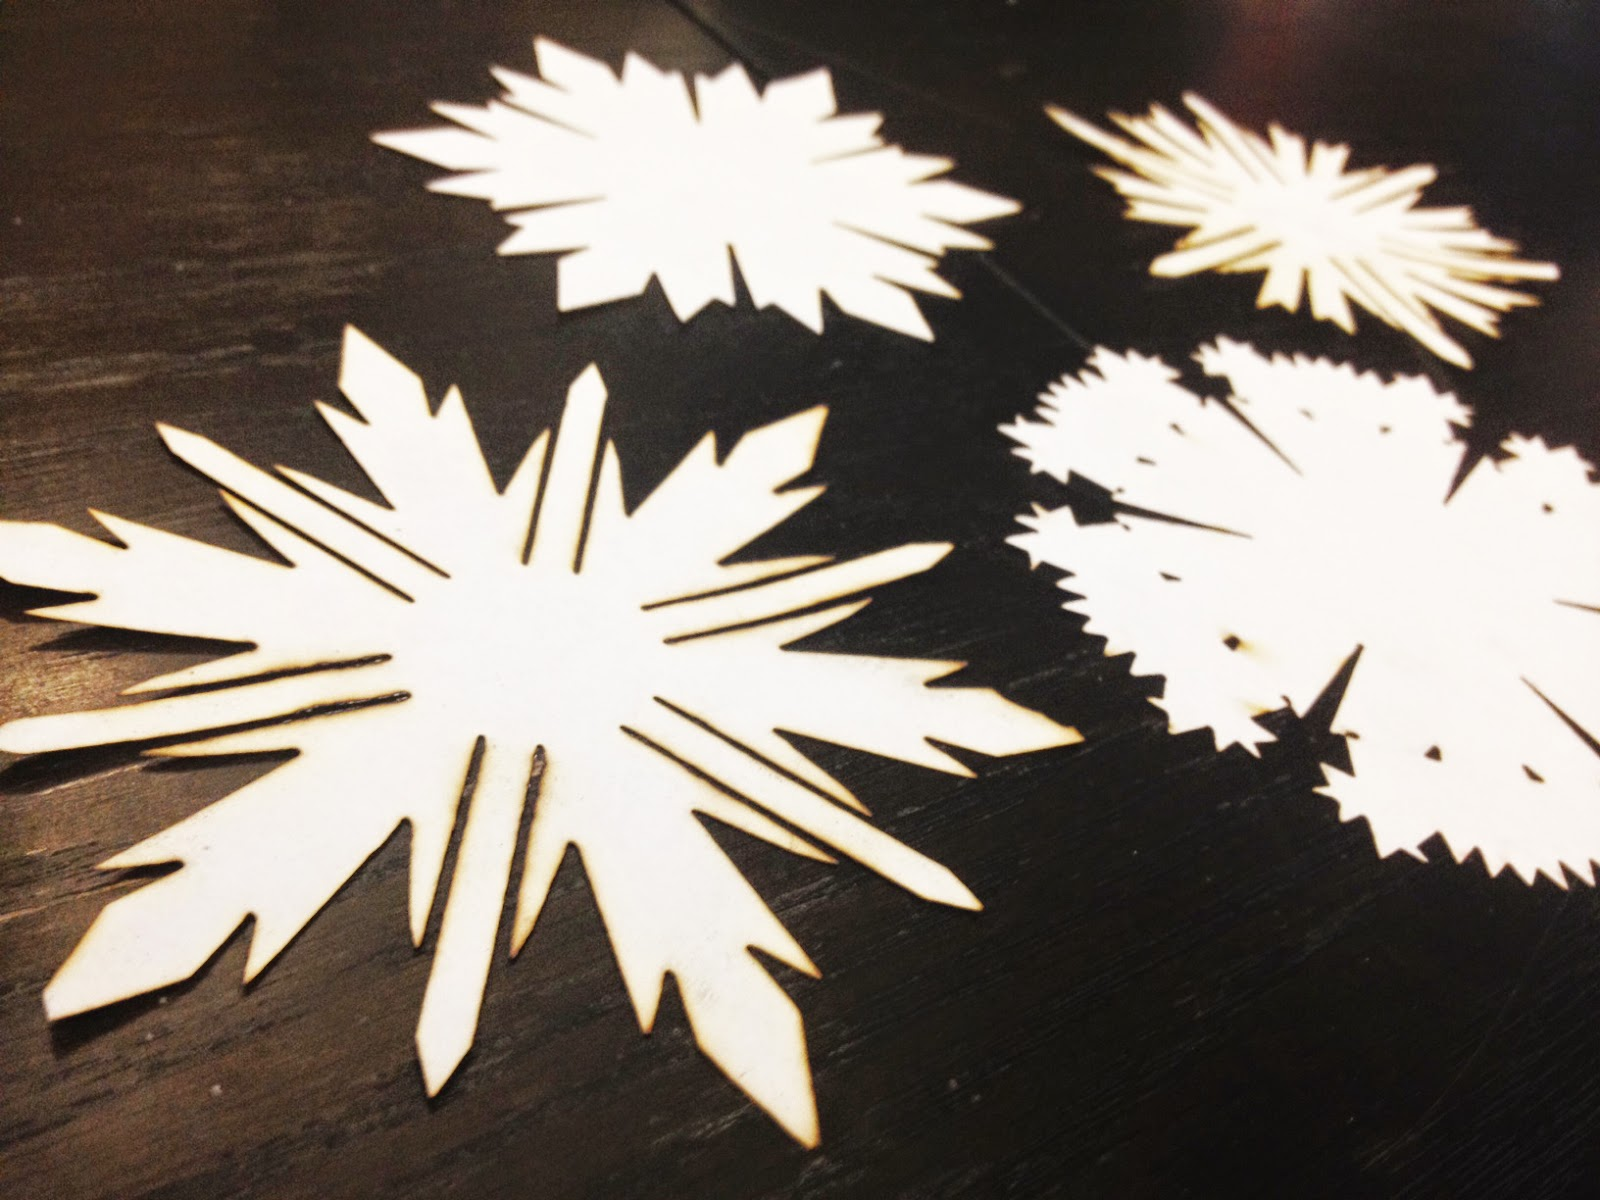 Make Every Snowflake Unique